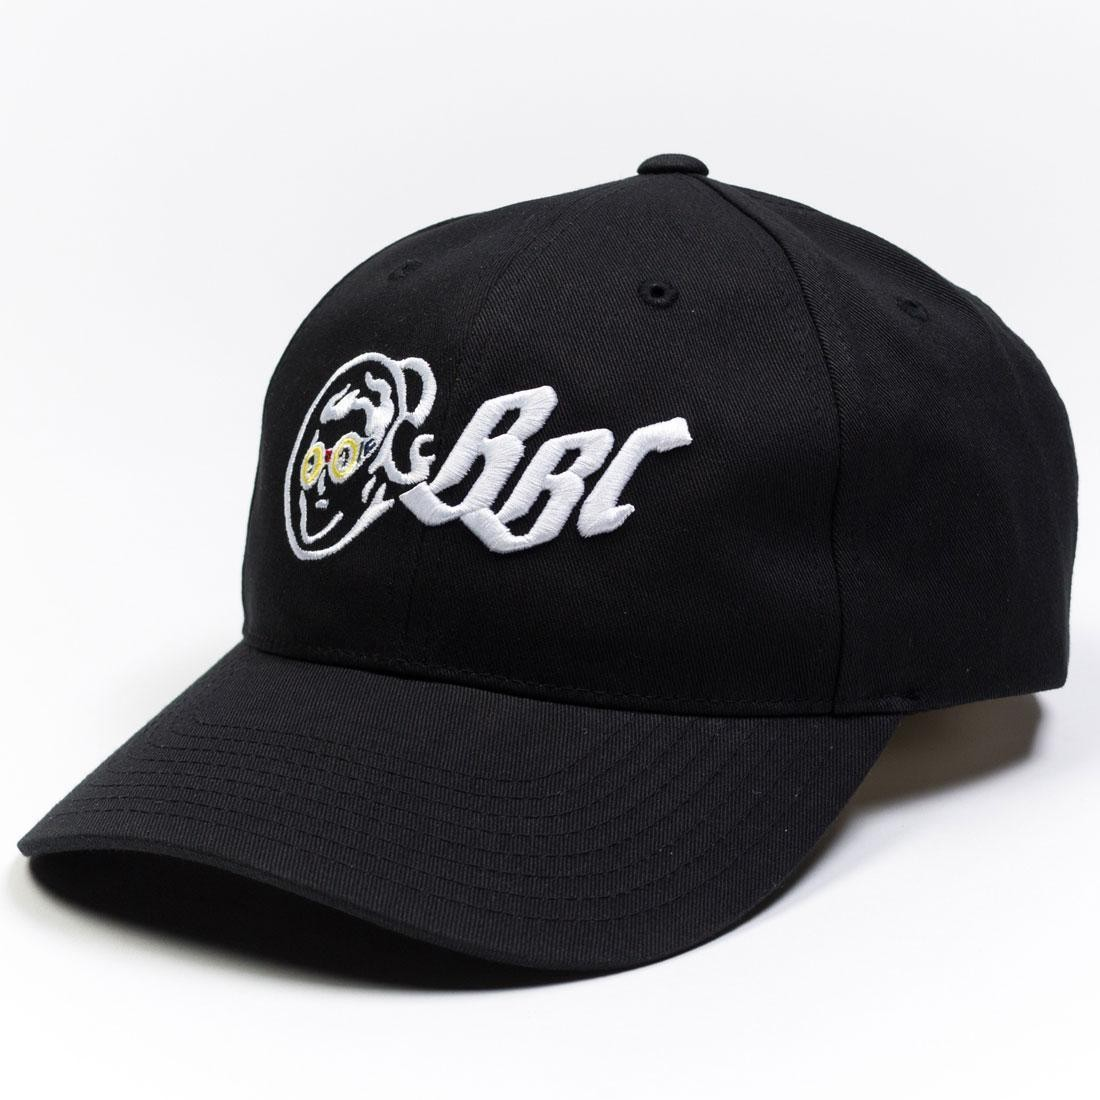 16260348b1416 ... release date billionaire boys club x hebru brantley og google dad hat  black 4f298 d0ac4